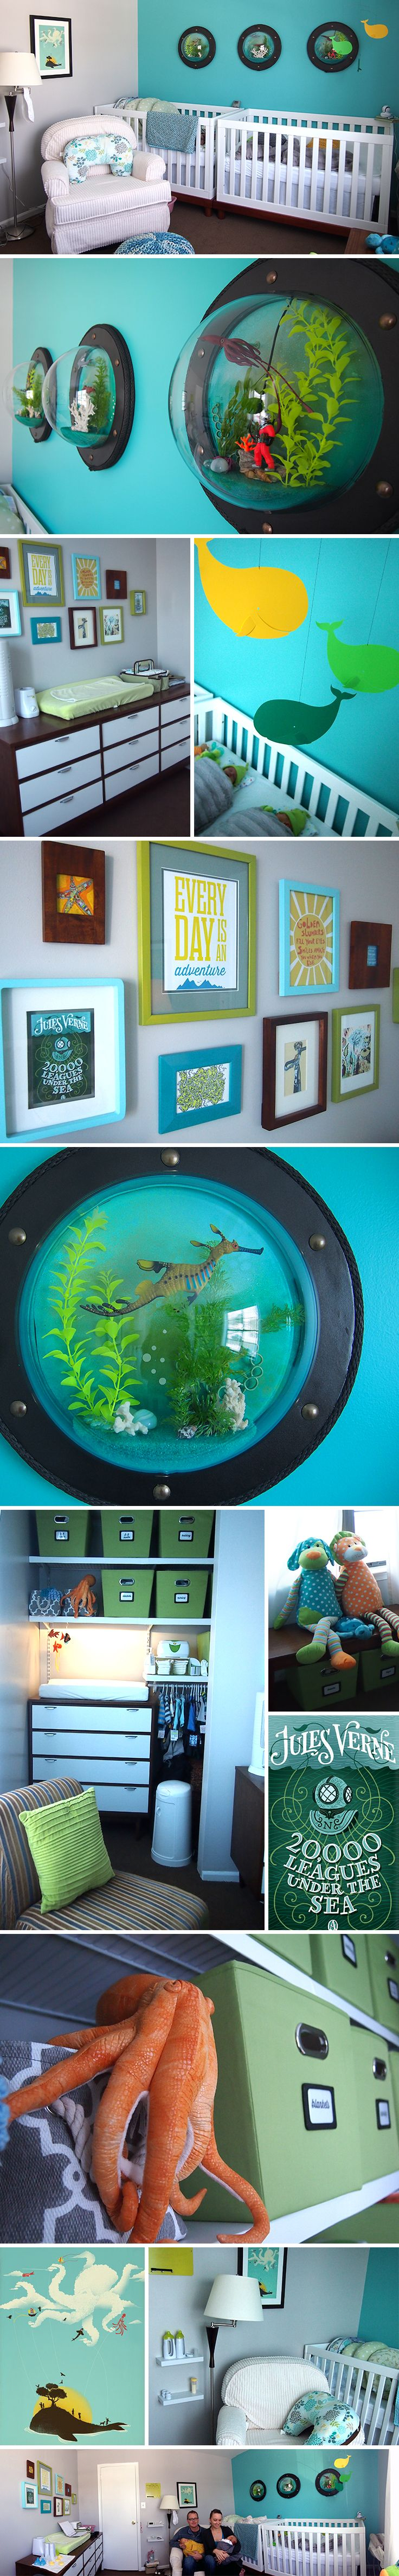 Nursery underwater sea theme for our twin boys, with handmade portholes, refurbished 1960's dressers, and loads of other DIY items #nurserytheme #onabudget #underthesea